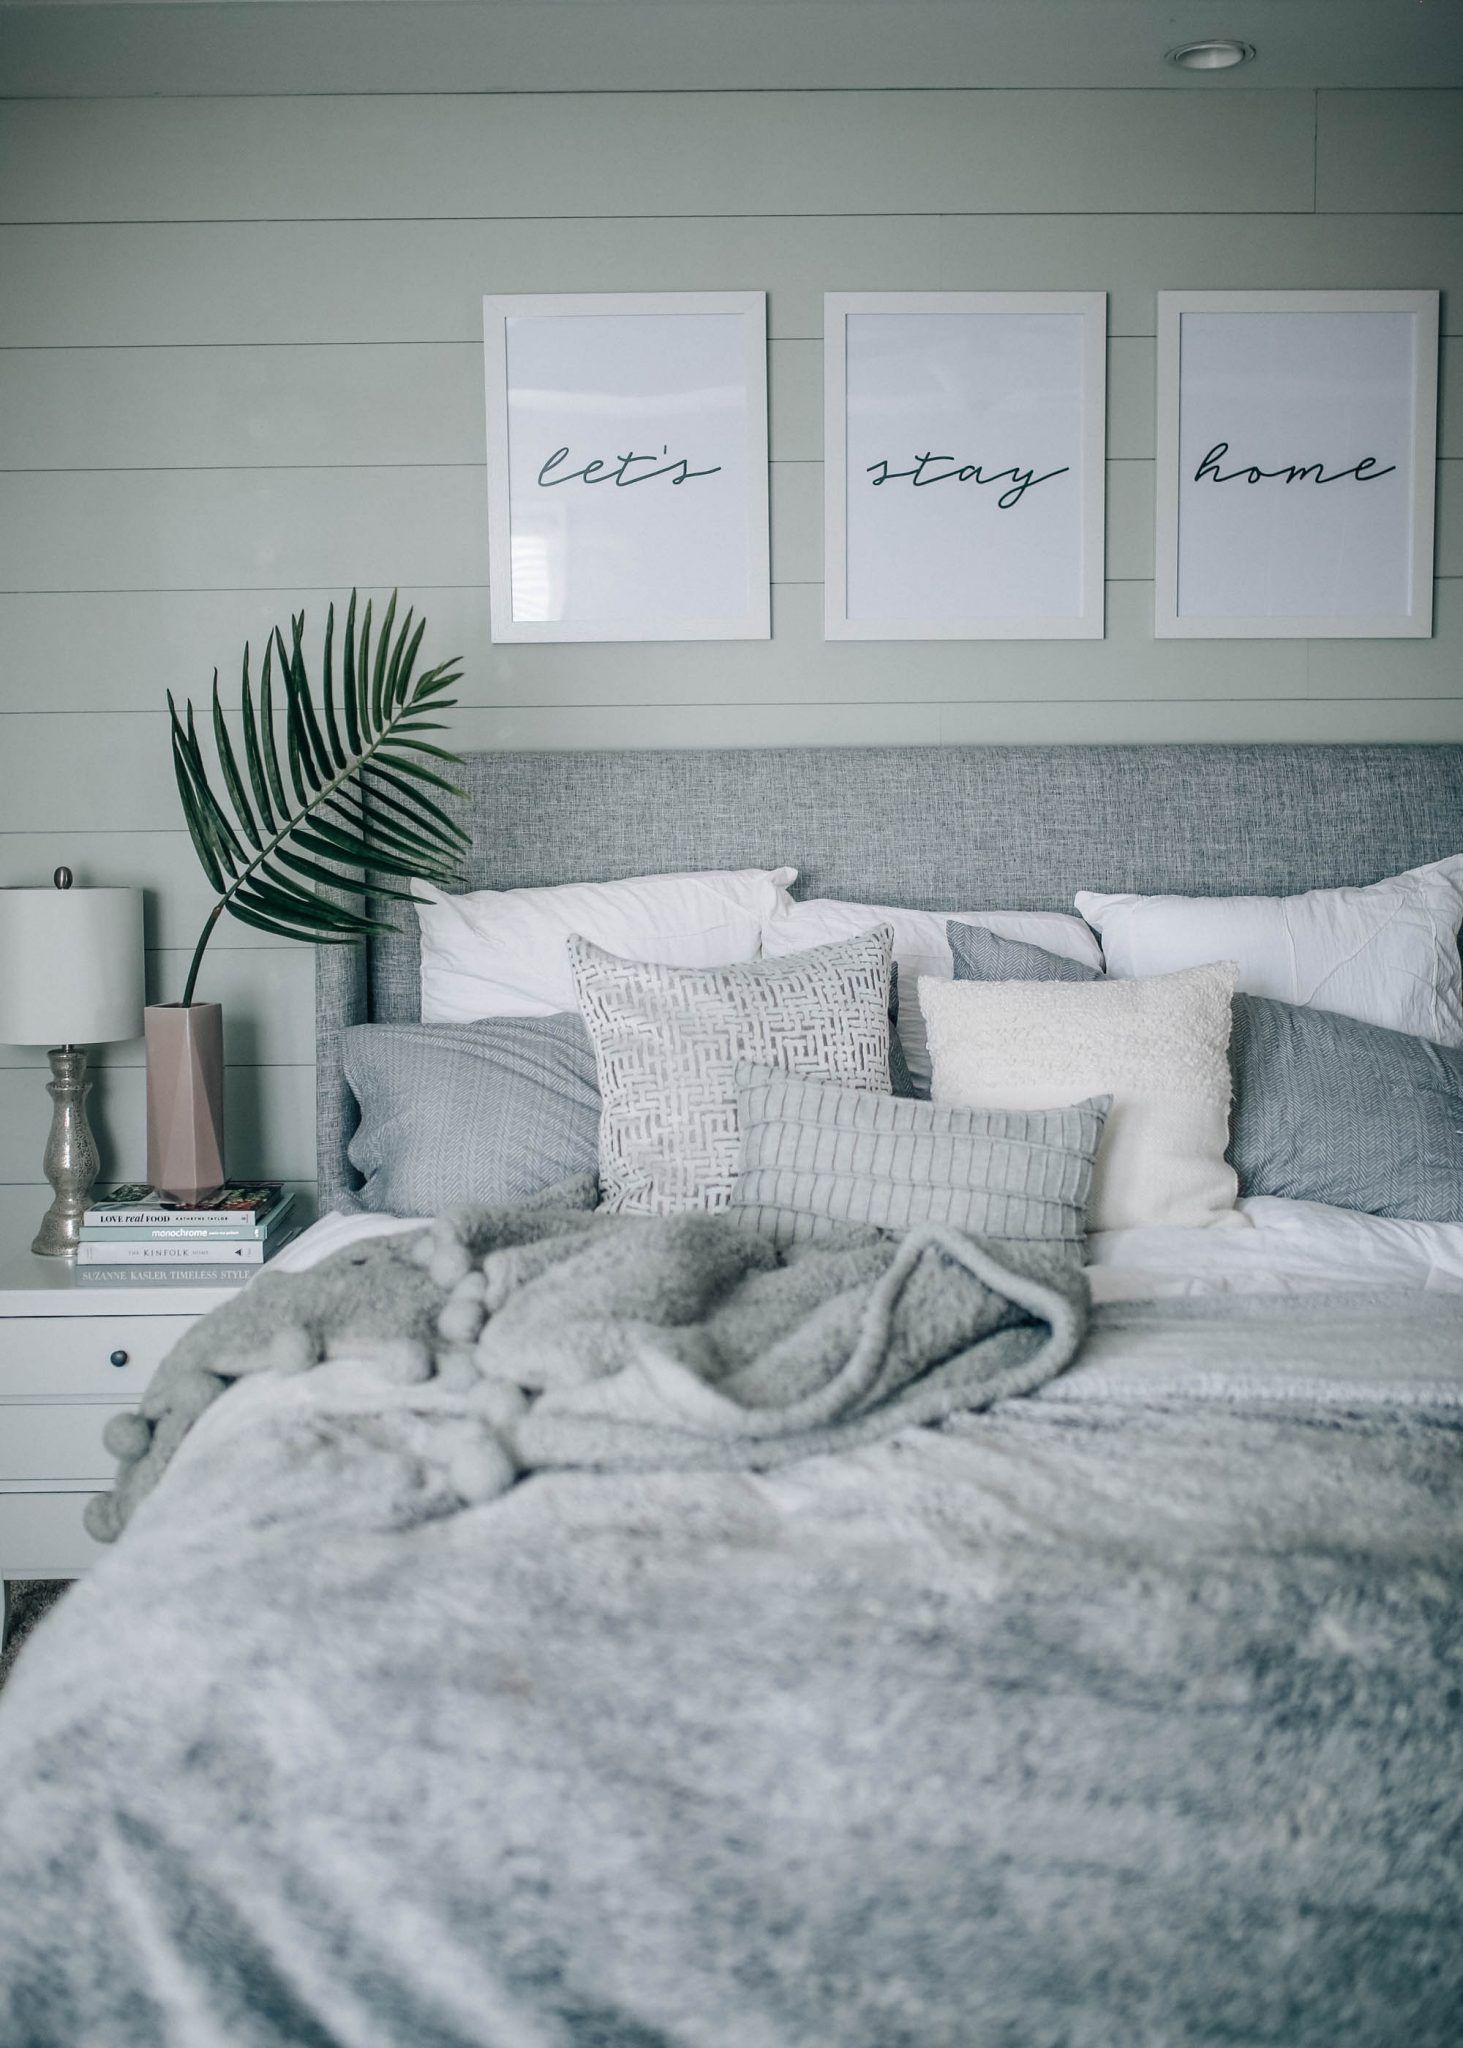 20 Grey Bedroom Ideas To Give Your Bedroom A Classy Look Idei Ukrasheniya Spalni Malenkie Uyutnye Spalni Kvartirnye Idei